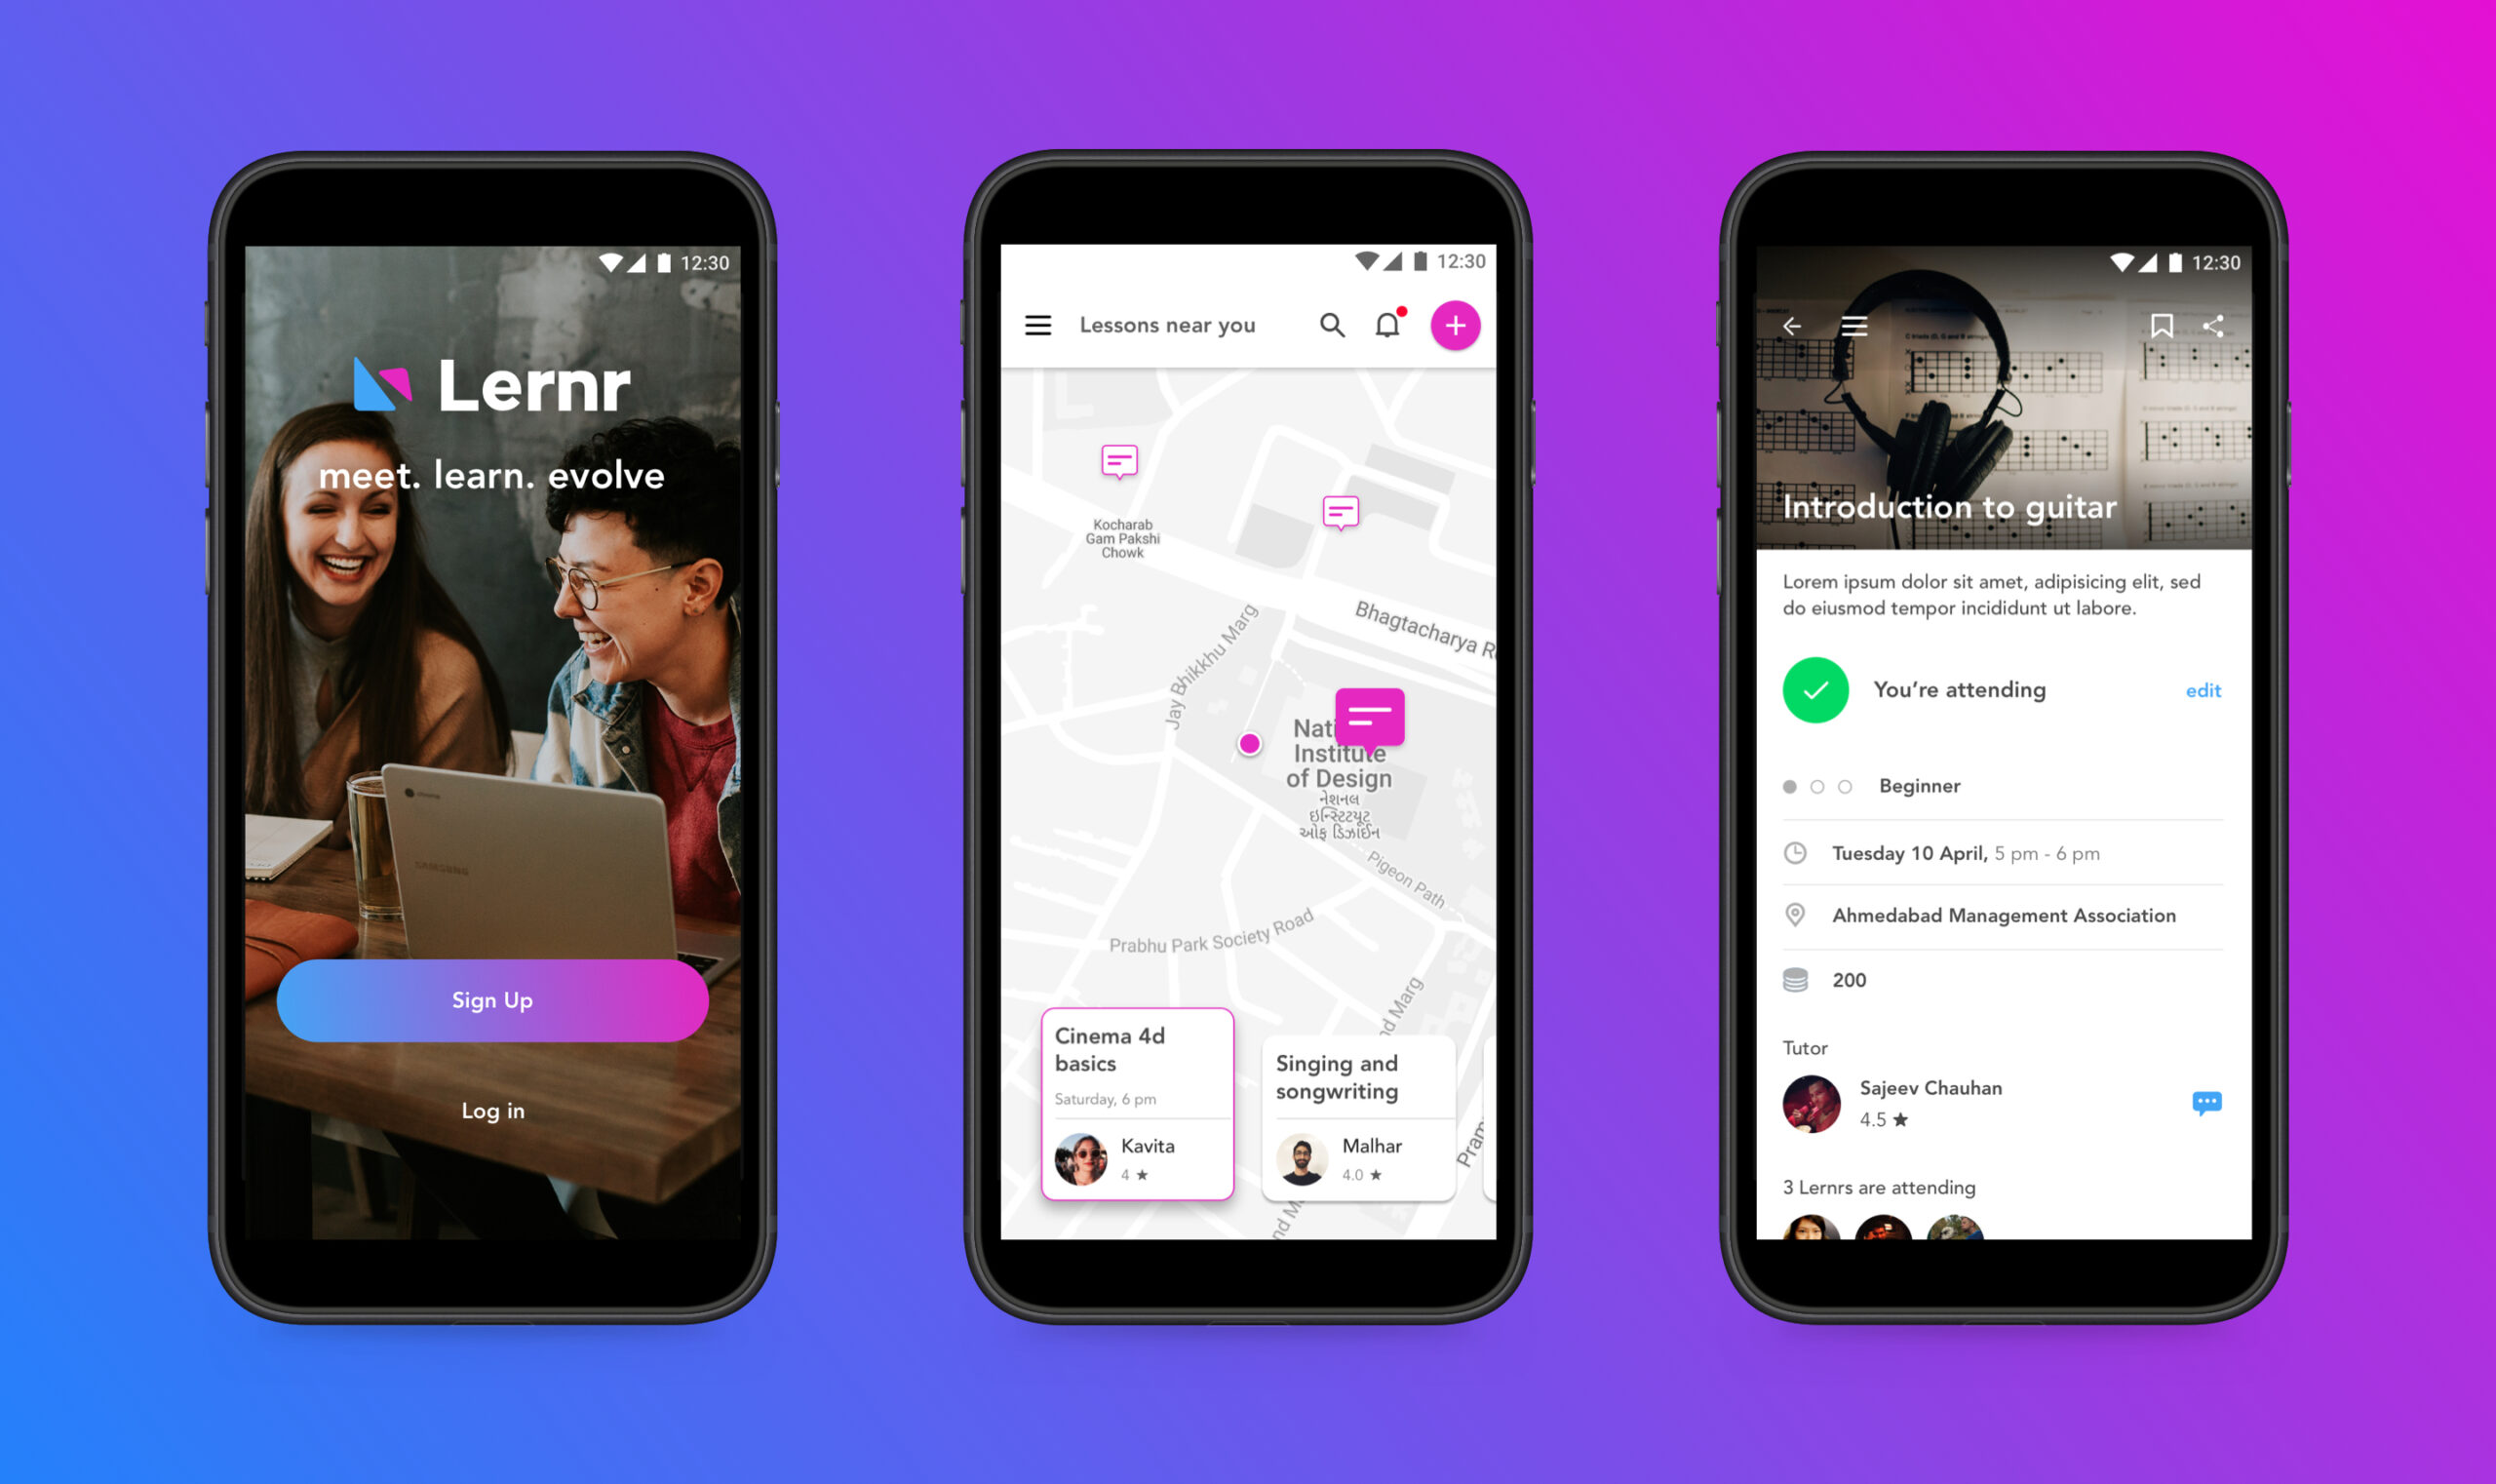 Lernr-App-Overview